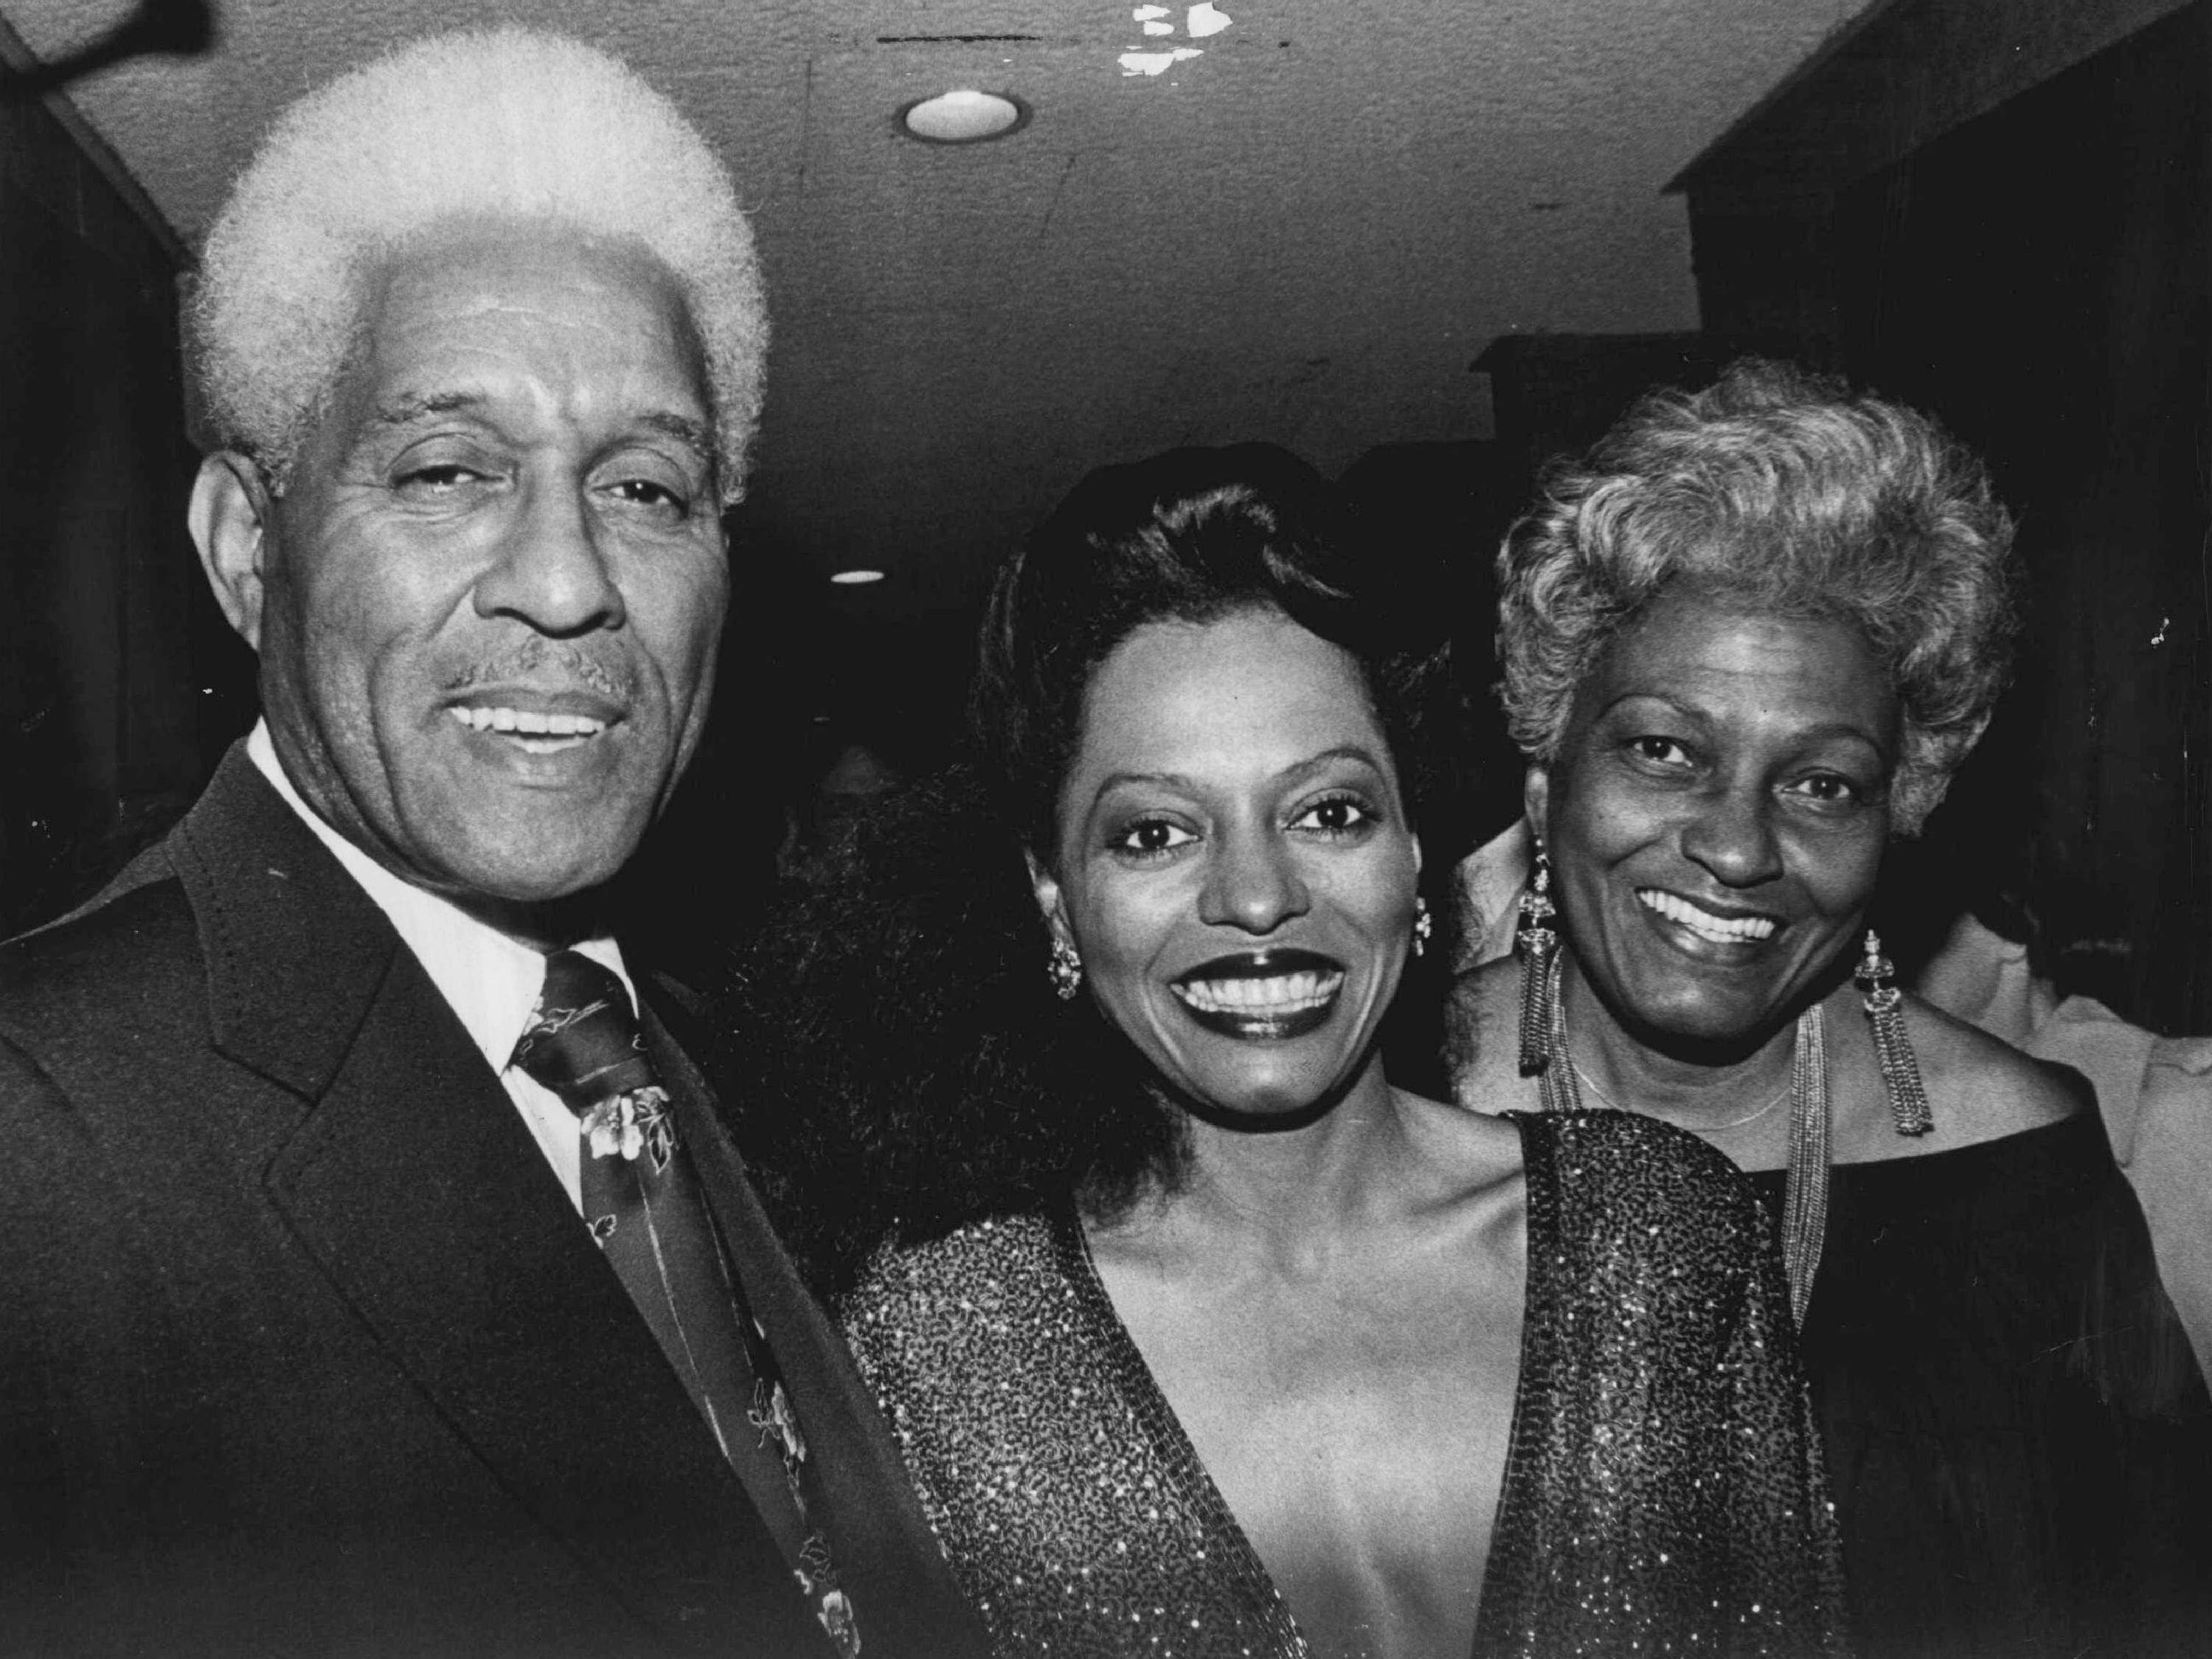 Diana Ross in 1978 with her parents, G. Fred Ross and Ernestine Jordan.